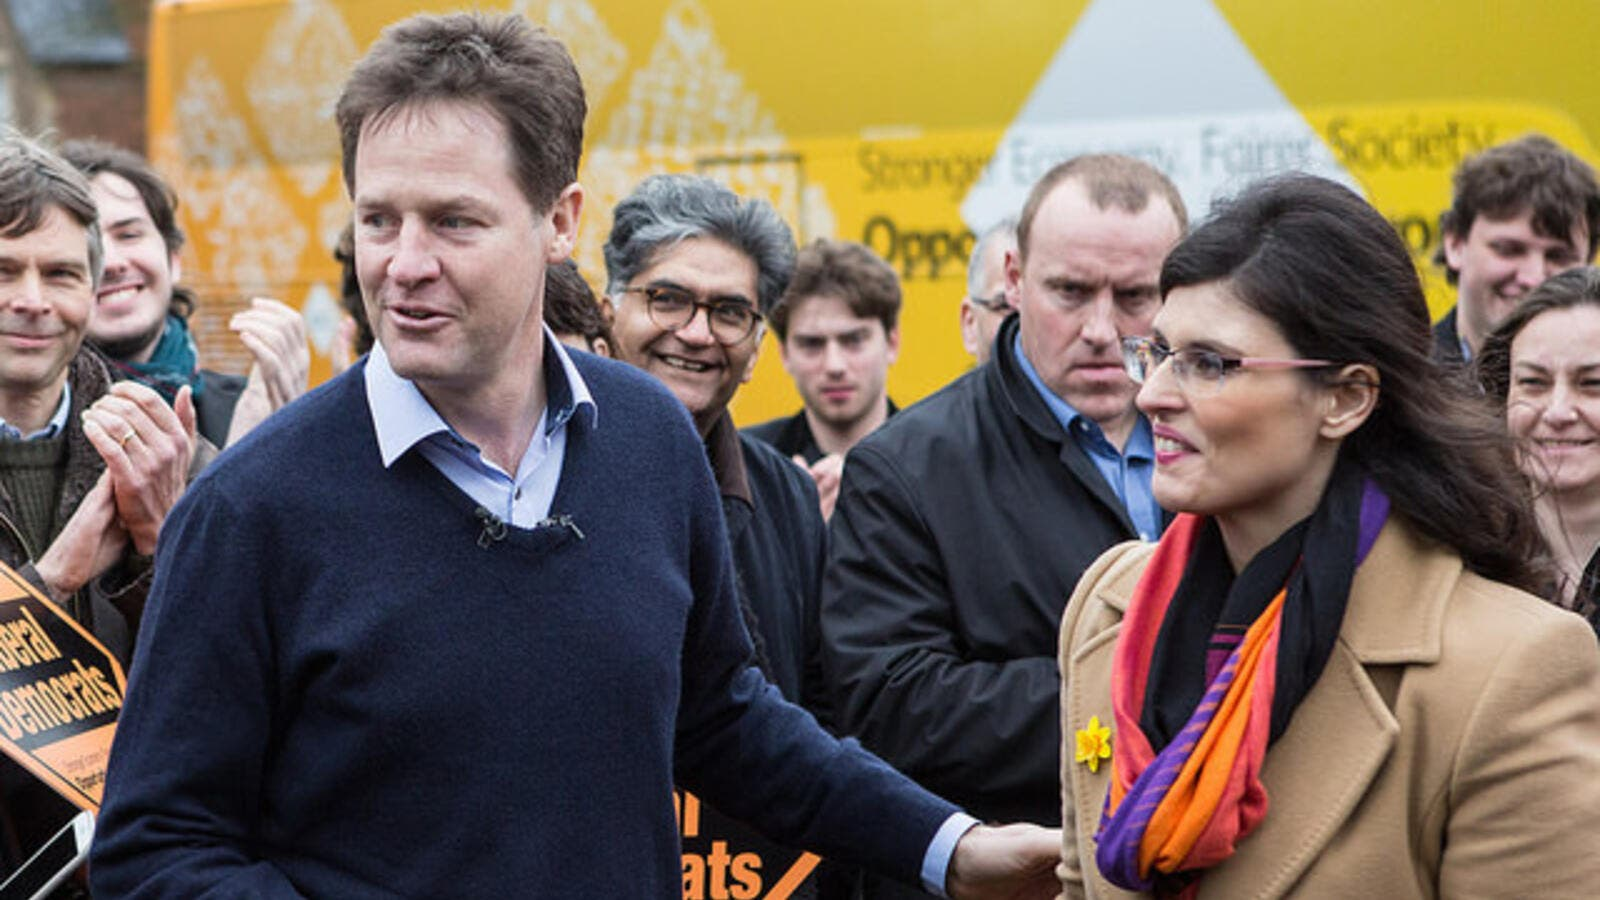 Layla Moran with former Liberal Democrat party leader Nick Clegg in 2015 (Flickr)